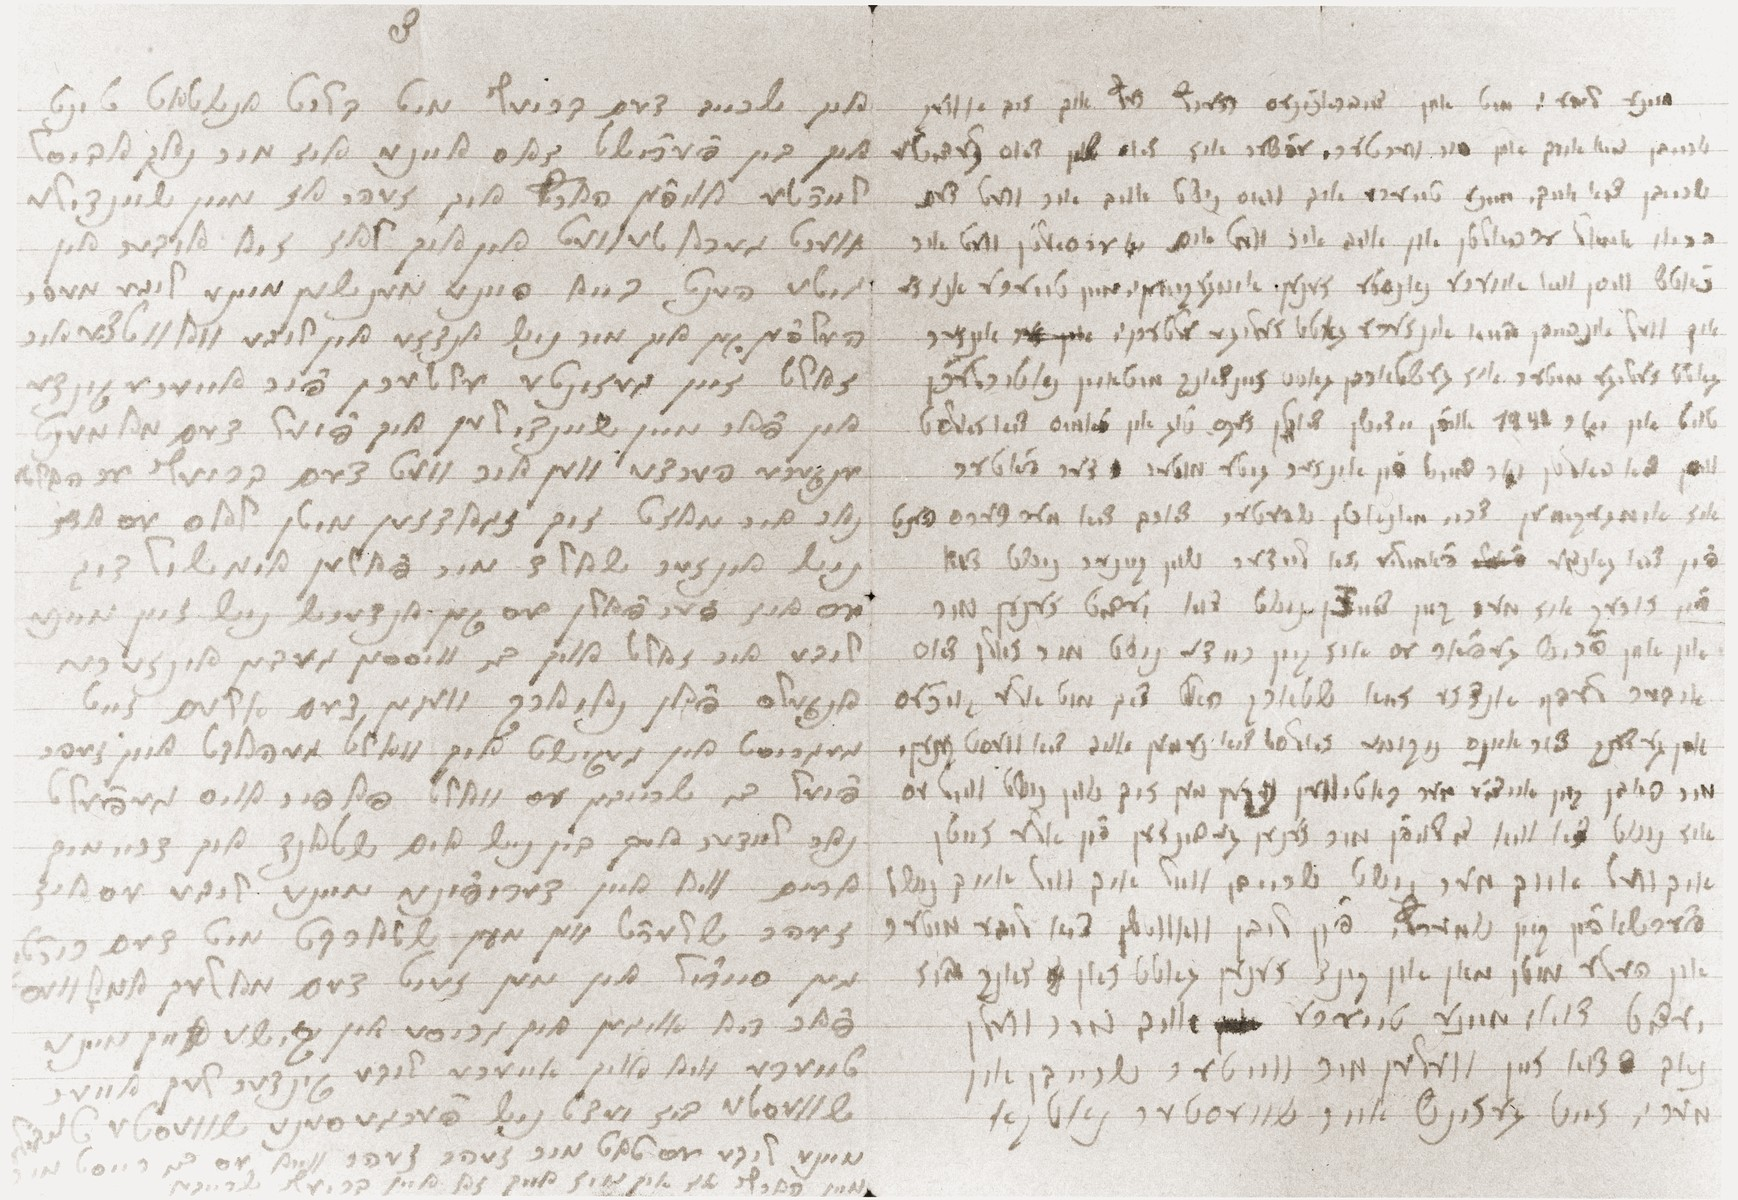 Letter smuggled out of the Dabrowa ghetto shortly before its liquidation describing the fate of the Goldblum and Broda families.  [Translation of the letter] Dabrowa:  July 27, 1943  My dear sister and brother-in-law:  If you ever receive the letter I am writing to you.  I do not know what happened to Itzik.  He was taken to a camp somewhere, and I have not heard from him.  I was able to leave Sheindele with Mr. Turkin.  I met Mr. Turkin only a few months ago.  I tell you, he and his wife are very decent people.  They took Sheindele under their care with love.  Andje and Wowtzie, you should know this when you hear some news about my child from Mr. Turkin.  You should be good parents to her, and you should take care of her with love like a mother's.  I am writing this letter to you during the last days of my life.  I have been with Volvele and with Nadilen.  We are expecting death any minute and we know what kind of death to expect.  My dearest, I have been without Itzik already for three years. I manage to feed myself and my children from my work.  I work in a shop ten hours a day, and after coming back from work, I do more work privately.  That's how I have managed to sustain us for four years, and the end is bitter and tragic.  But thank God, I know Mr. Turkin.  He is an angel, and I do not have nice enough words to describe him and his wife.   From the whole family, you will have only my child Sheindele.  I hope she will remain alive.  I am sure that Mr. Turkin and his wife will care for and save my child.  My dearest, I am not in a position to reward Mr. Turkin.  Please see that he is rewarded handsomely.  You should believe every word Mr. Turkin tells you.  You should reward him nicely because my child will remain with you.  I know I am sure because I can already see the Angel of Death before me. I don't believe even a miracle can help us now.  It cannot happen.  You should know, Volvele, Nadilen and I are the last sacrificial victims.  Aaron and his wife, Shei